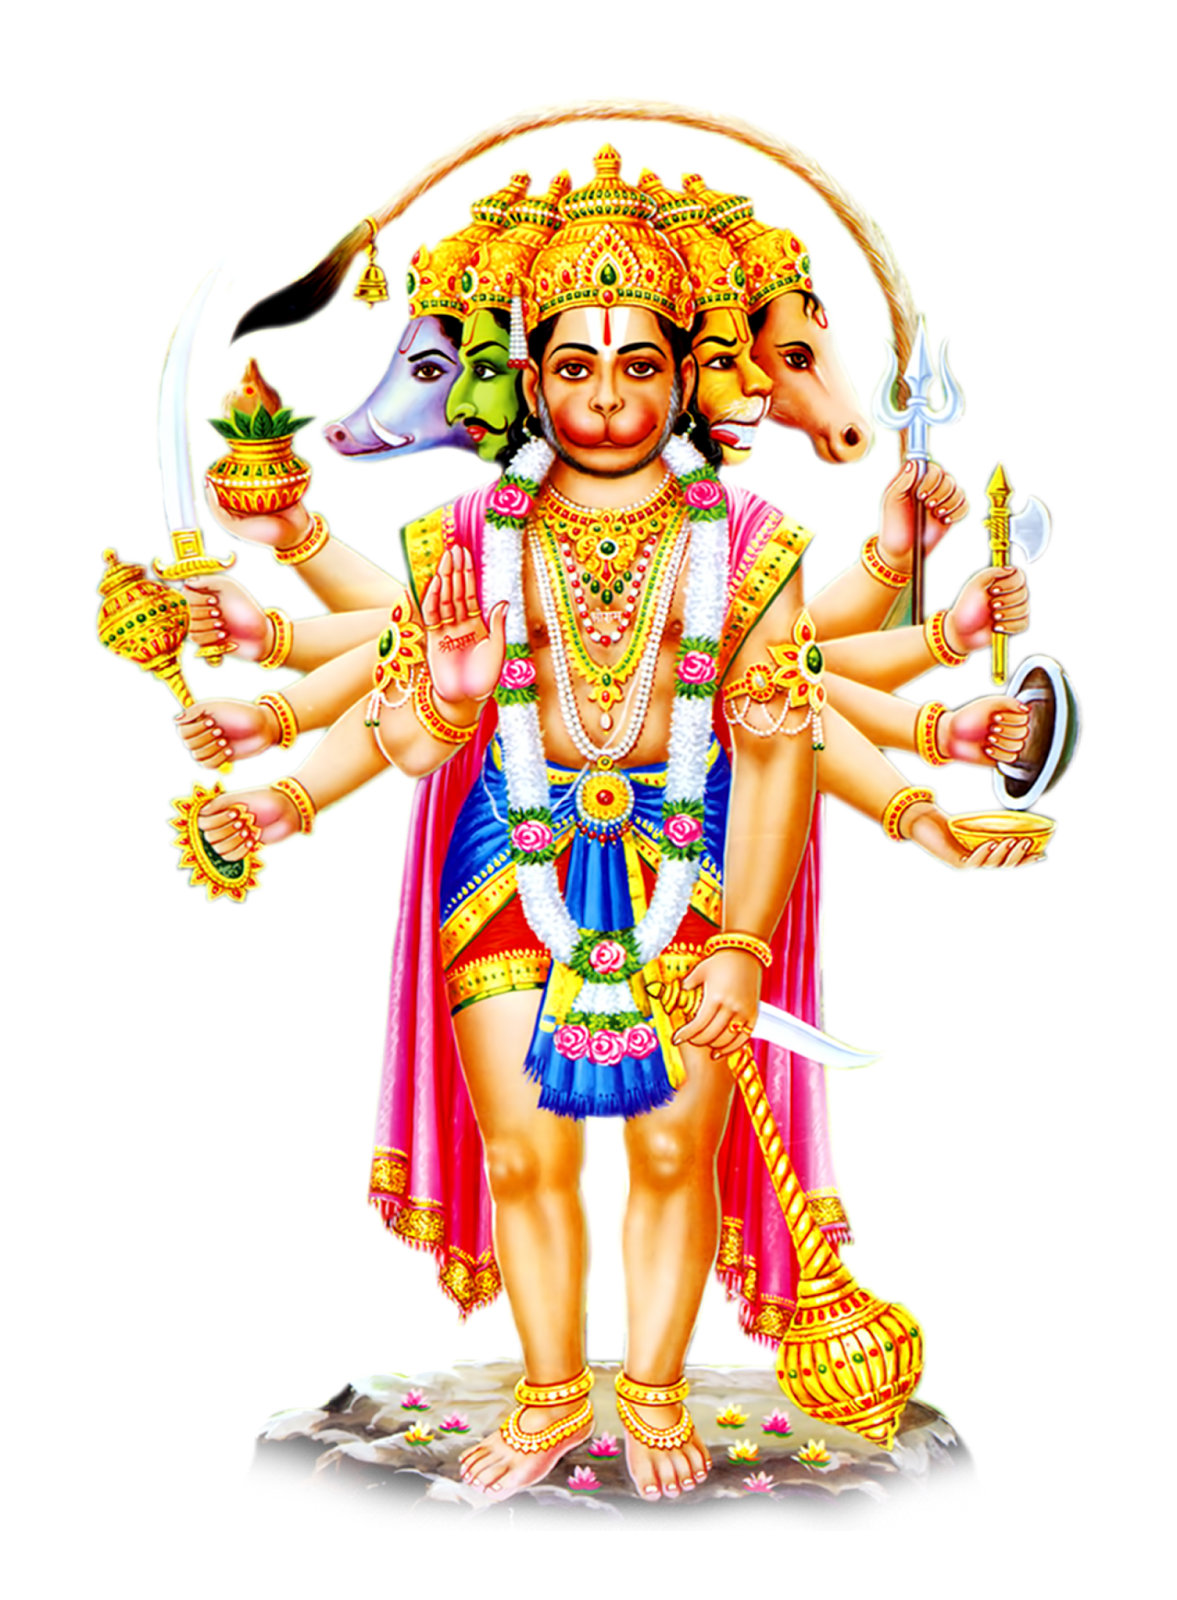 PNG File Name: Hanuman PNG HD Dimension: 1177x1600. Image Type: .png.  Posted on: Apr 25th, 2017. Category: Religion Tags: Hanuman, Hinduism - Hanuman PNG